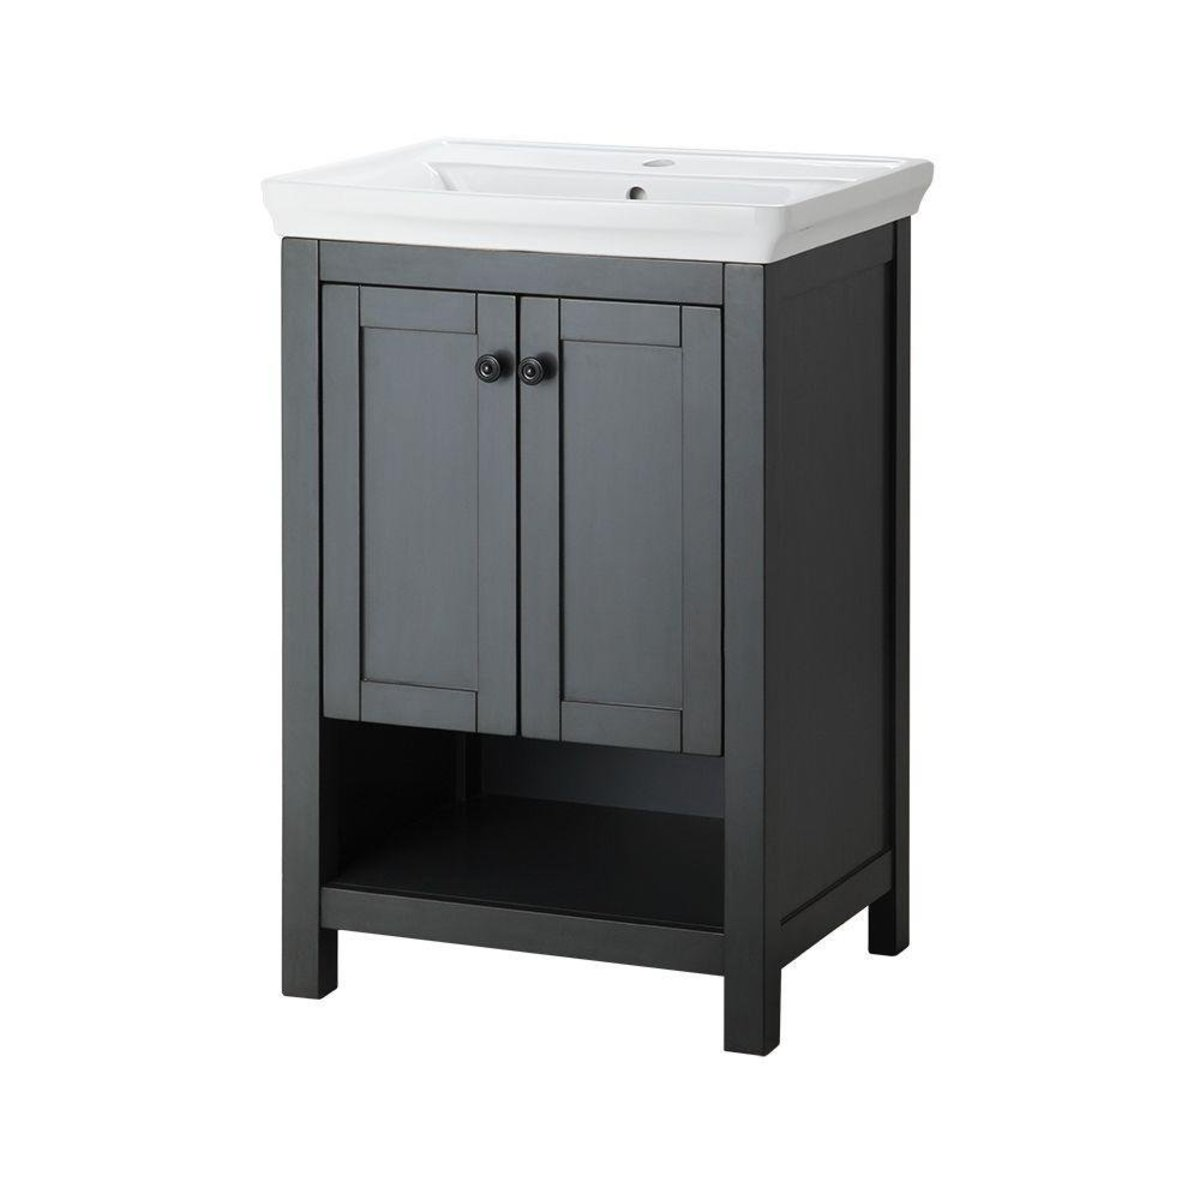 The hottest trends in bathroom design are combined into this affordable vanity under $500.